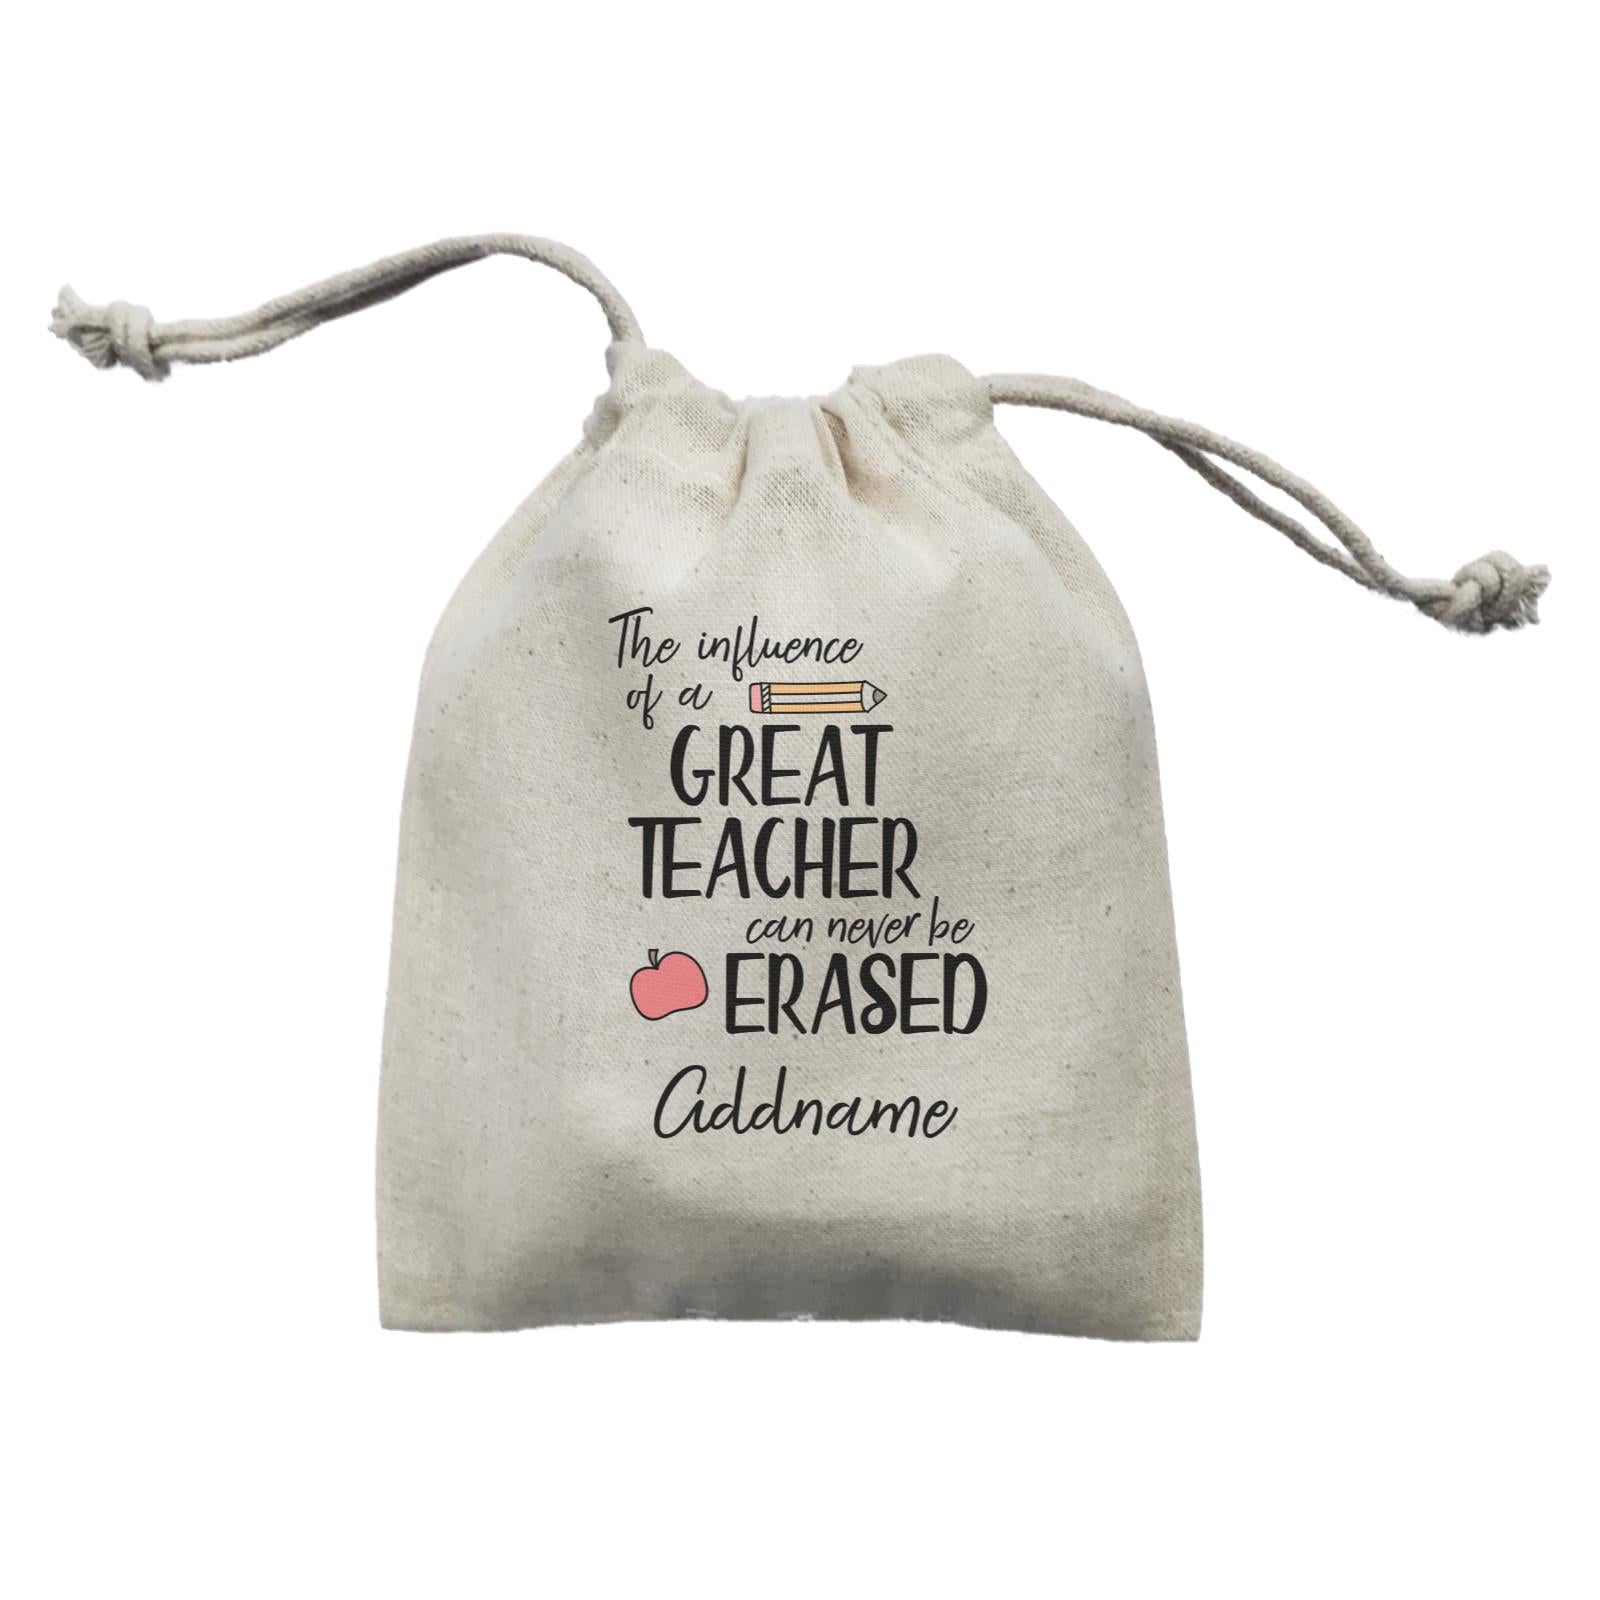 Teacher Quotes The Influence Of A Great Teacher Can Never Be Erased Addname Mini Accessories Mini Pouch